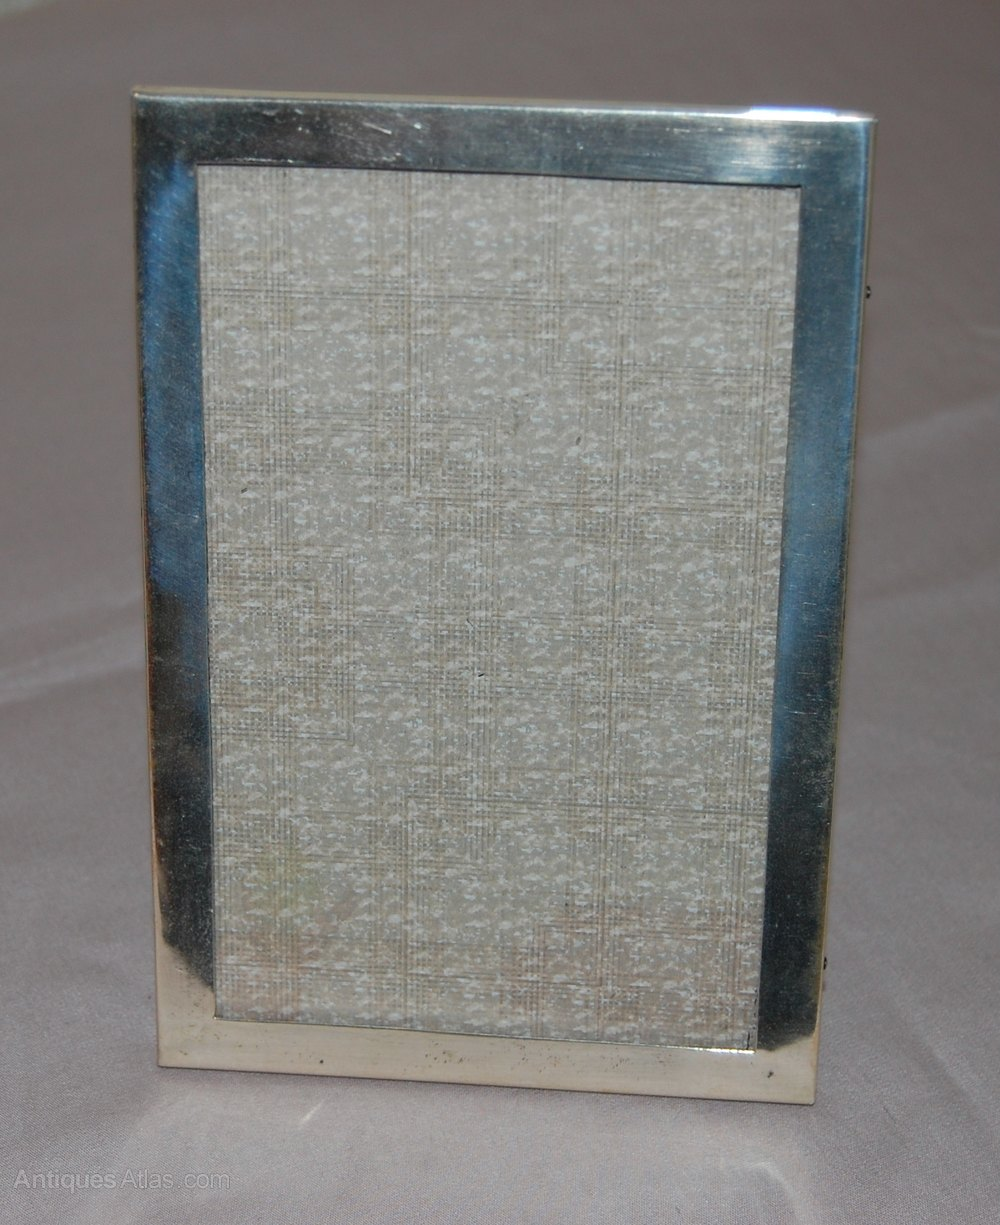 Antiques Atlas - Silver Photo Frame 1925